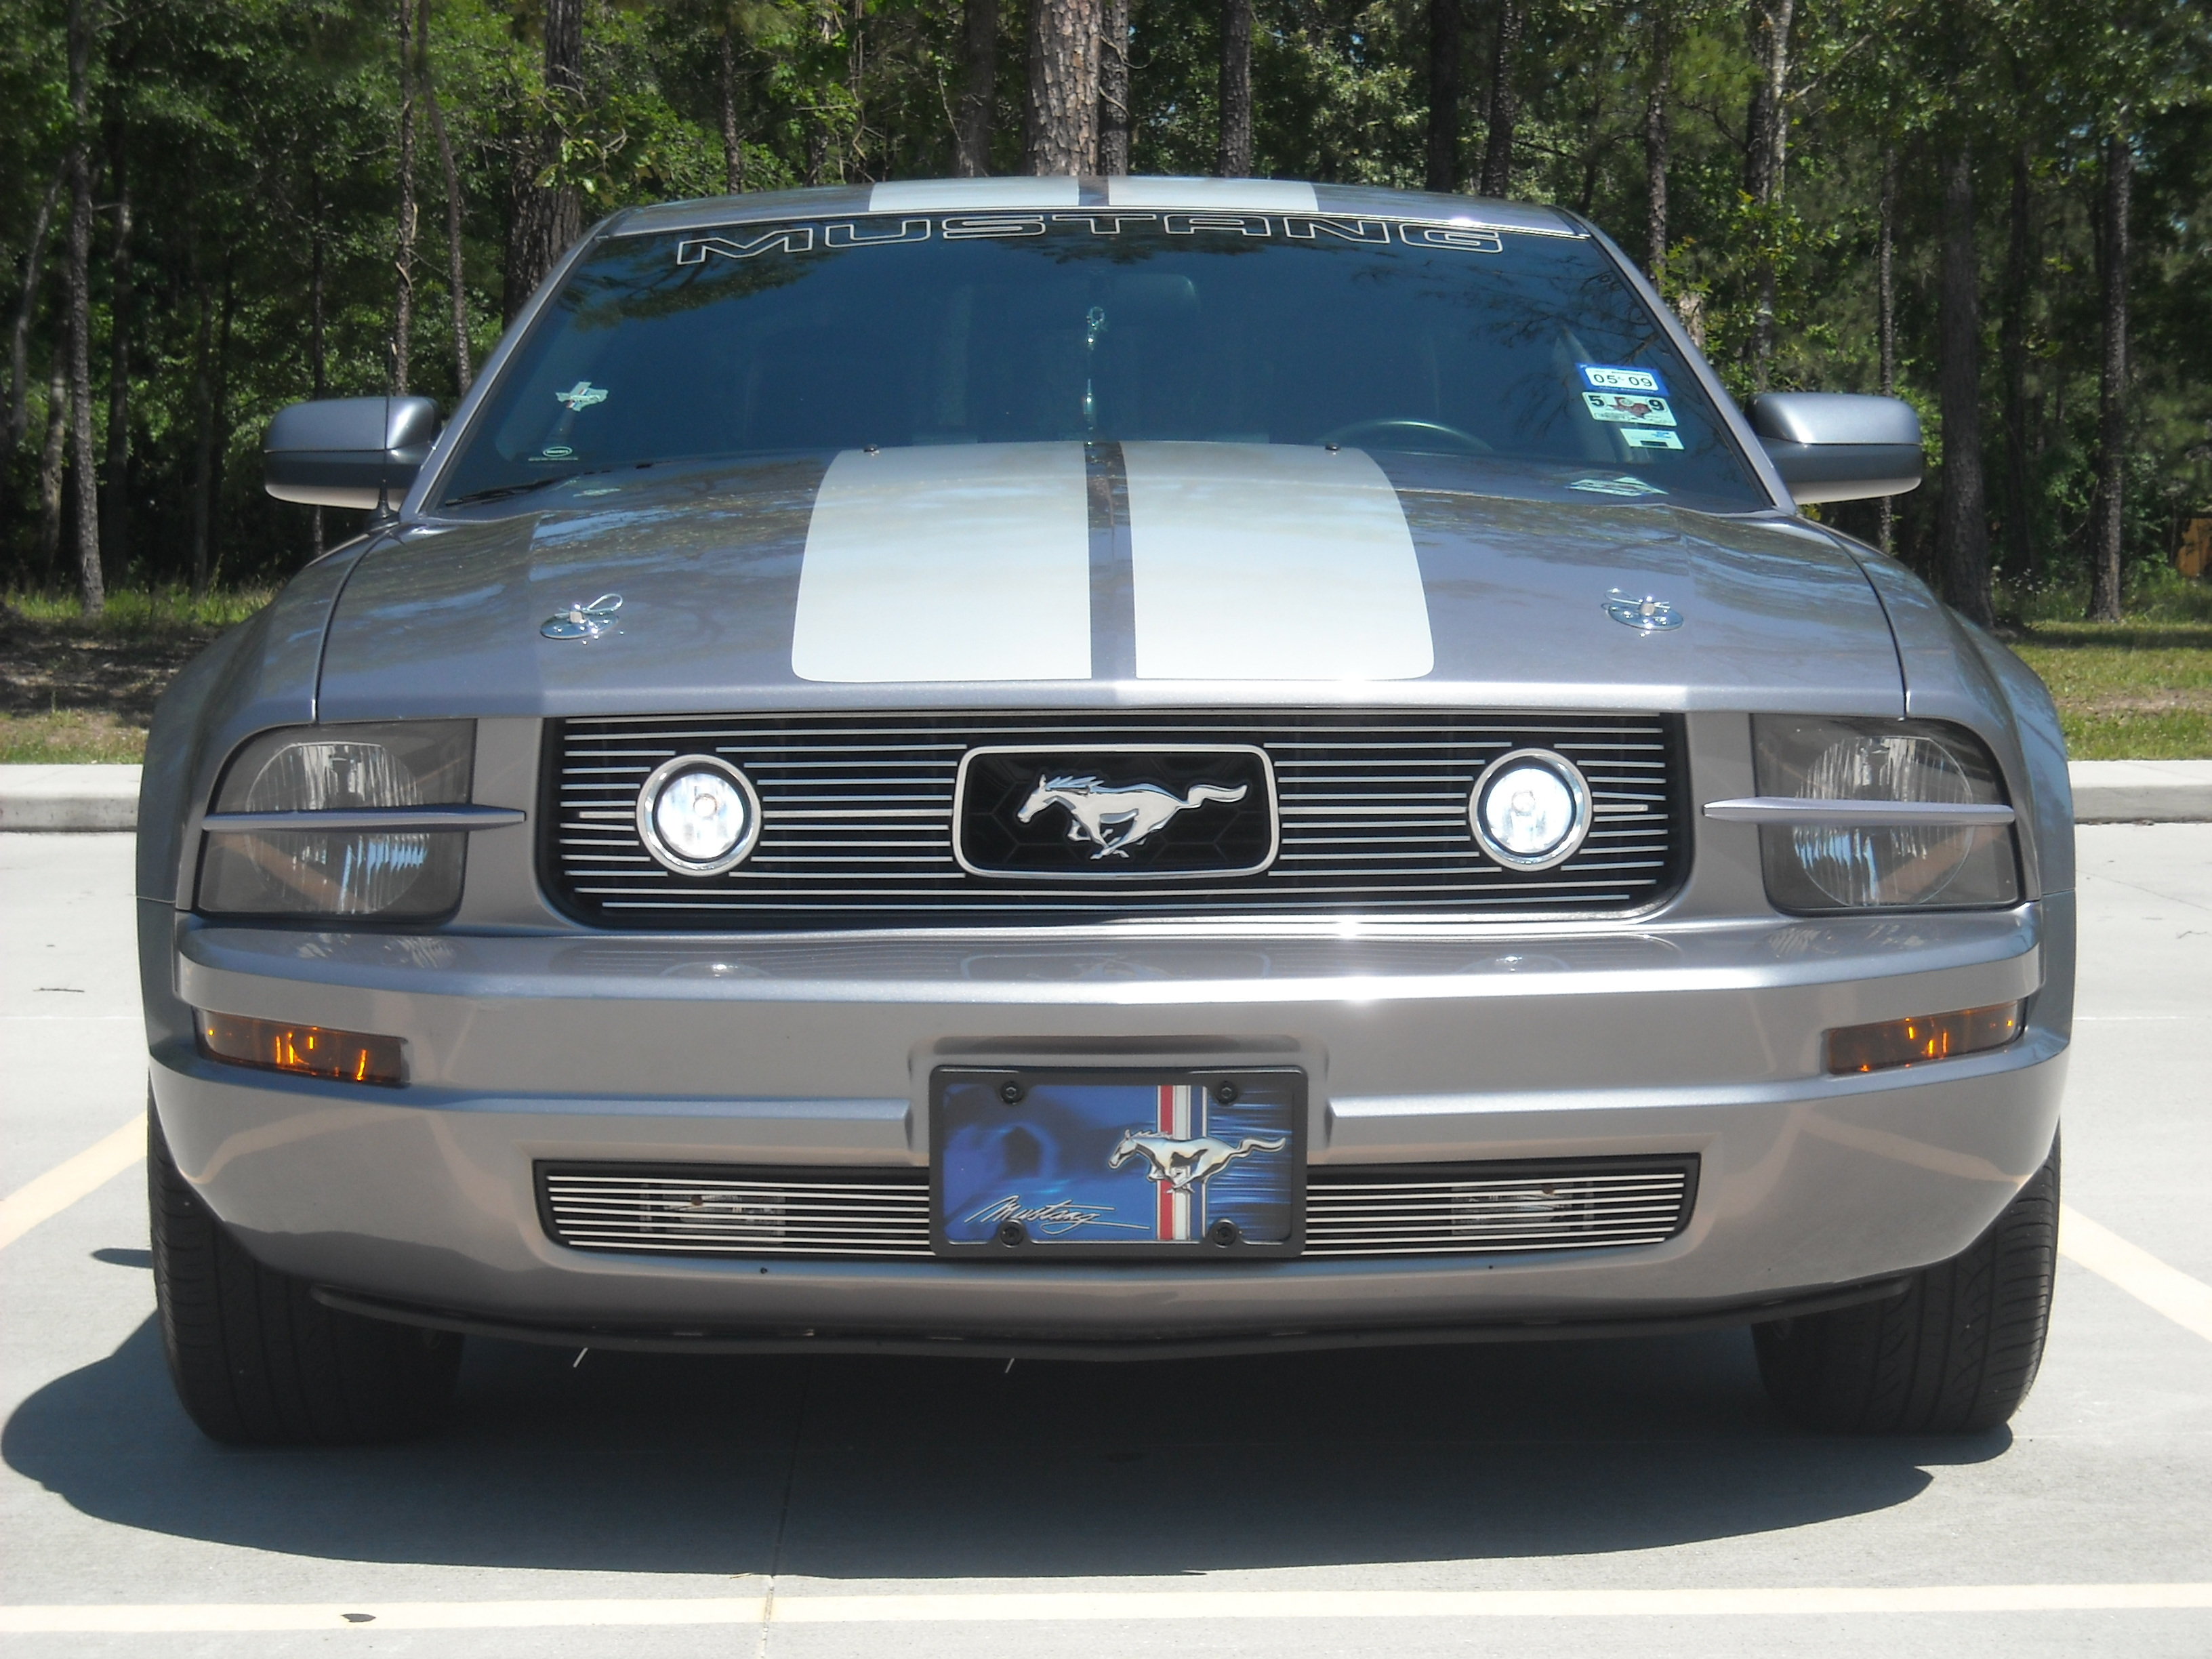 ckh84 2008 ford mustang specs photos modification info at cardomain. Black Bedroom Furniture Sets. Home Design Ideas